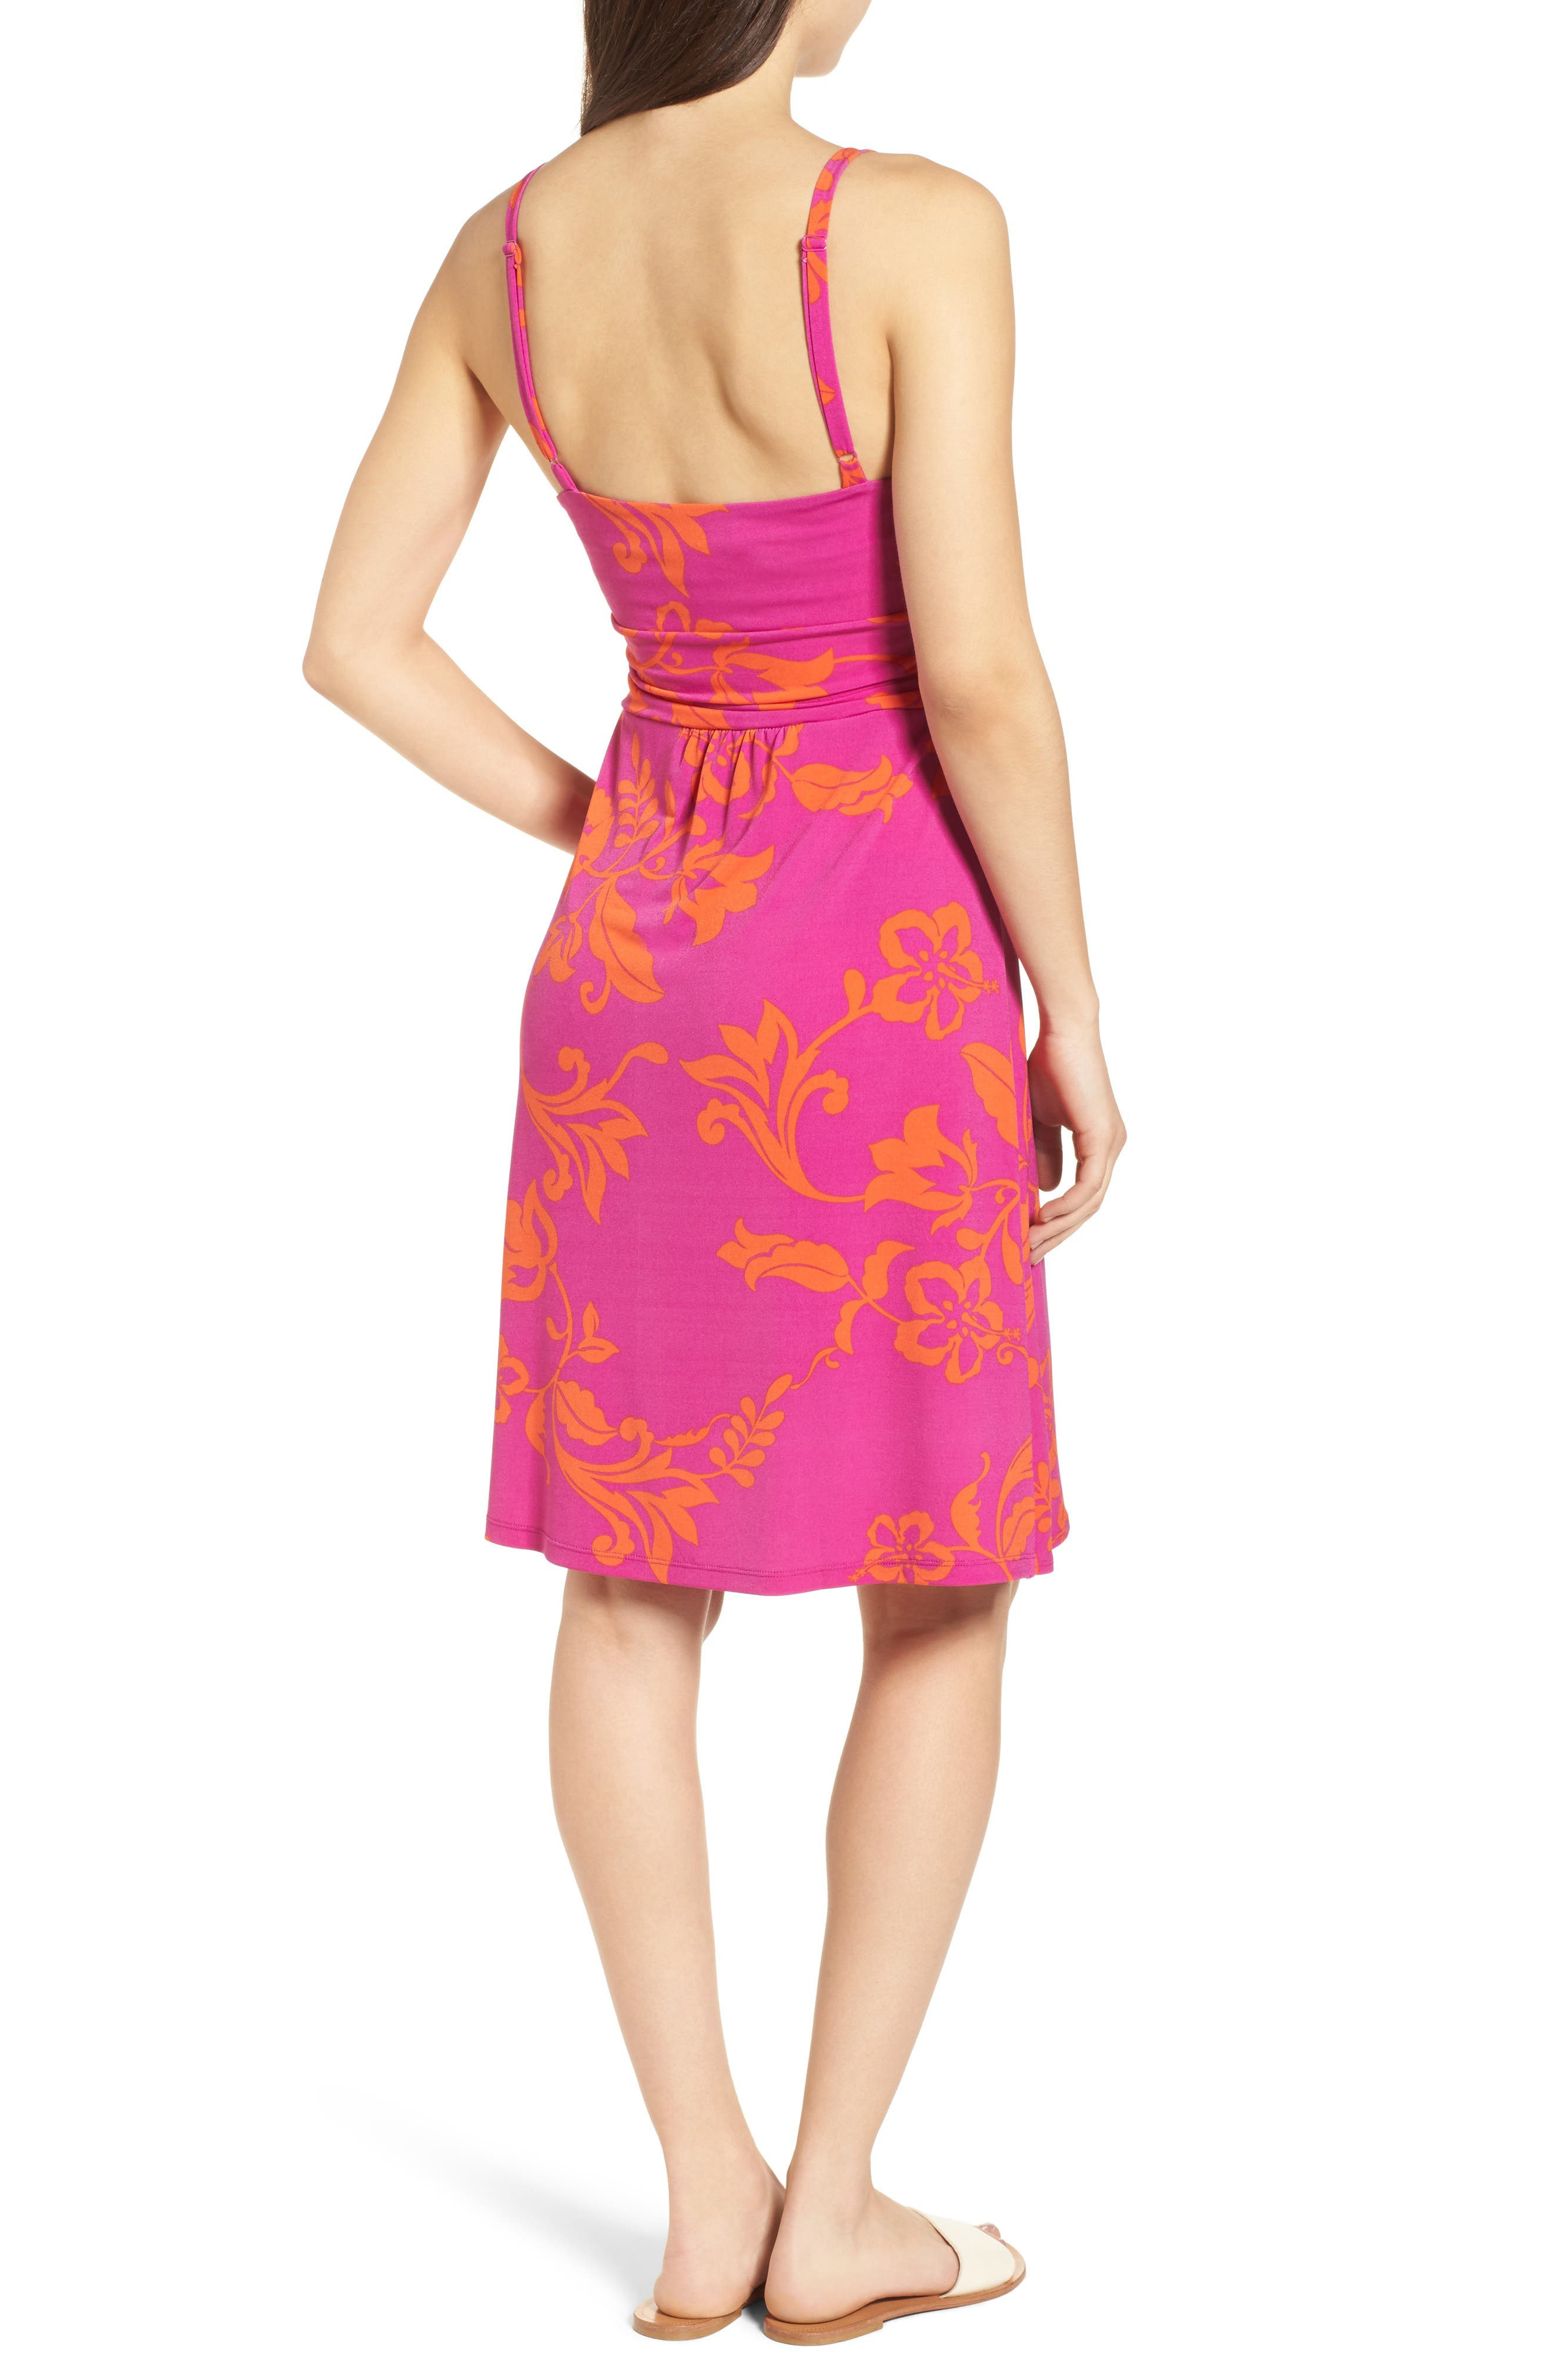 San Lucia Minidress,                             Alternate thumbnail 2, color,                             Festival Pink